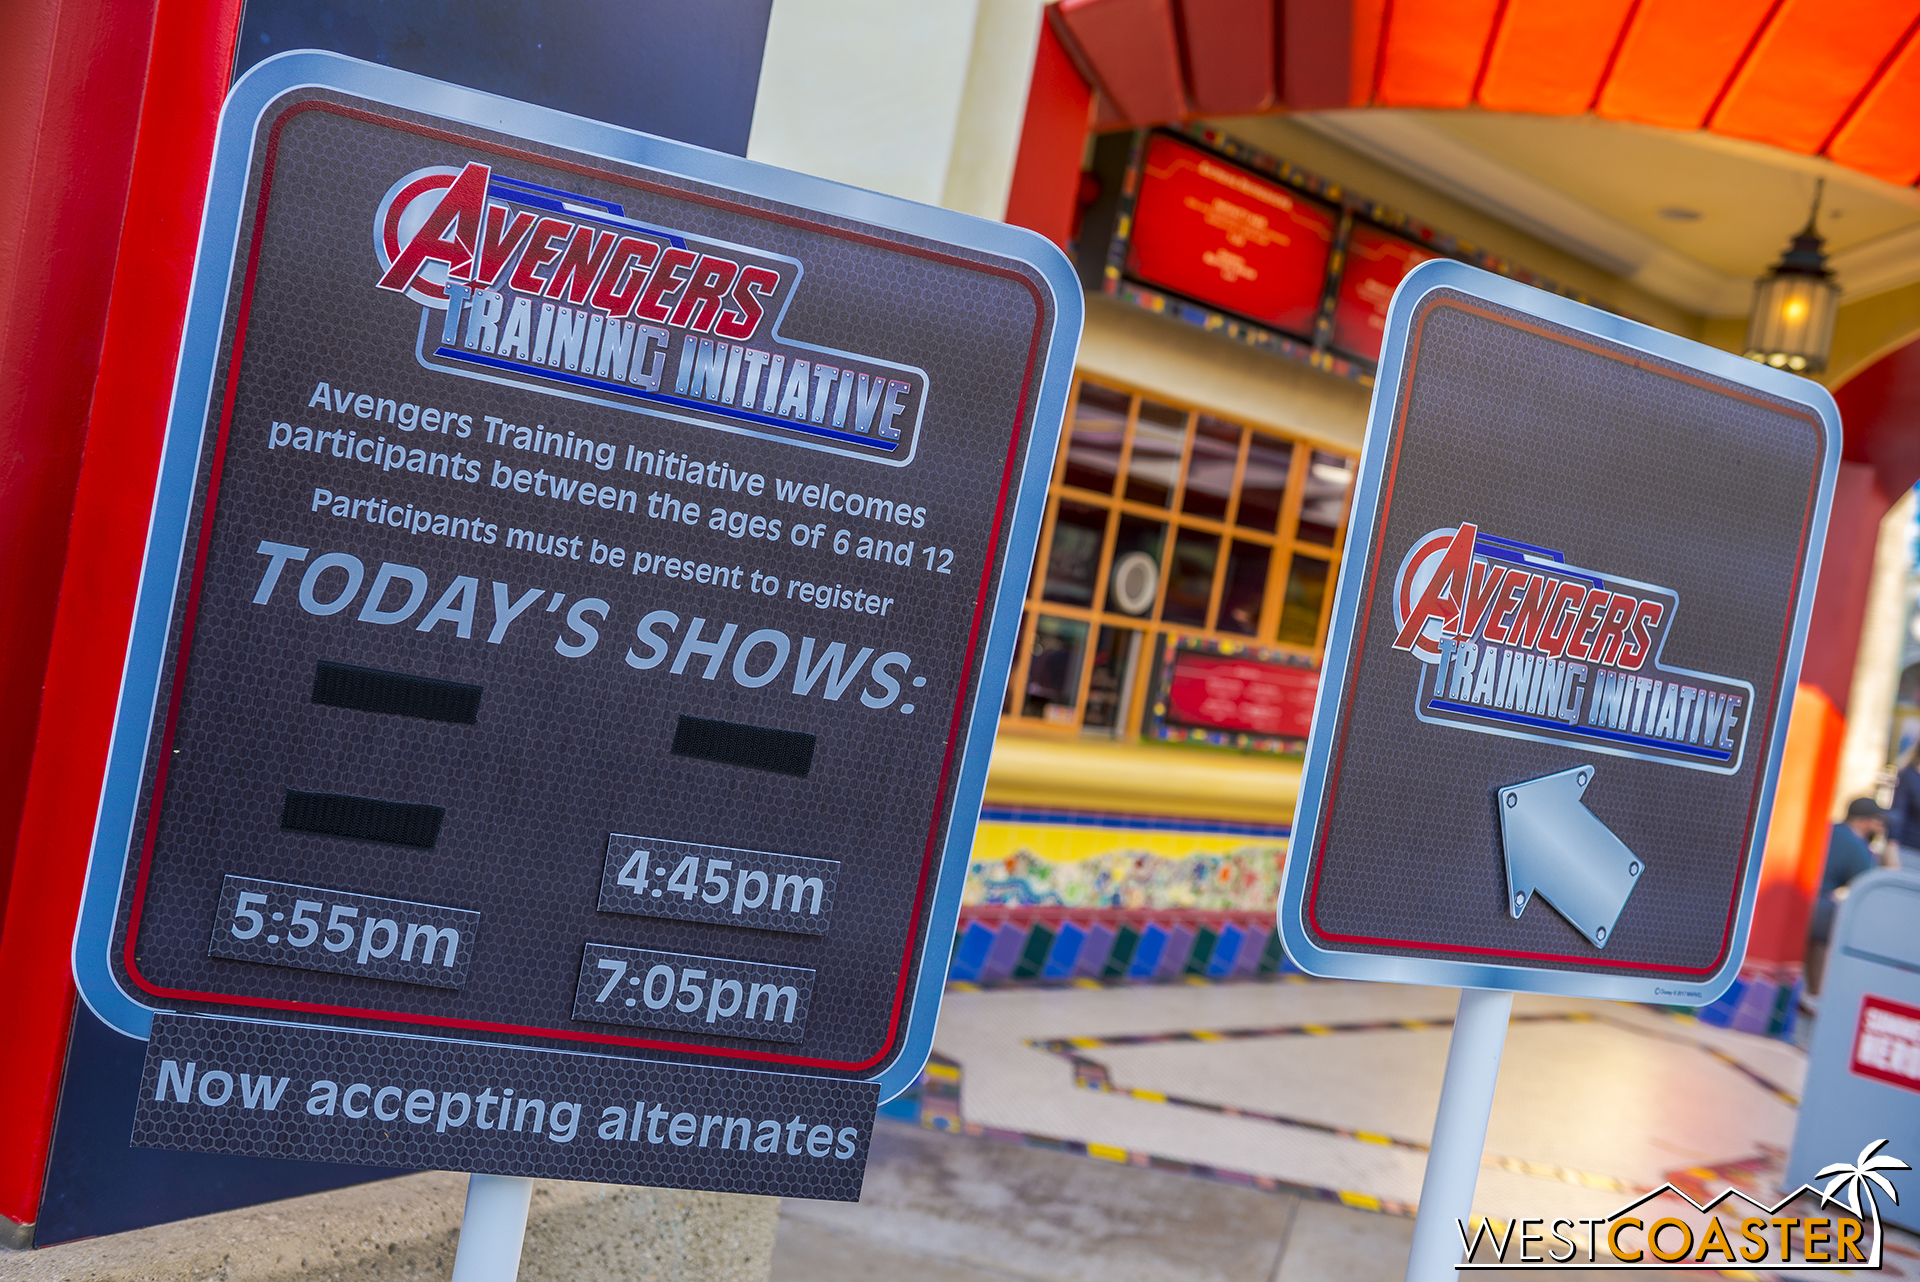 Avengers Training Initiative takes place in the Hollywood Backlot stage area, across from Monsters, Inc. Think of the Jedi Training Academy, but with Avengers.